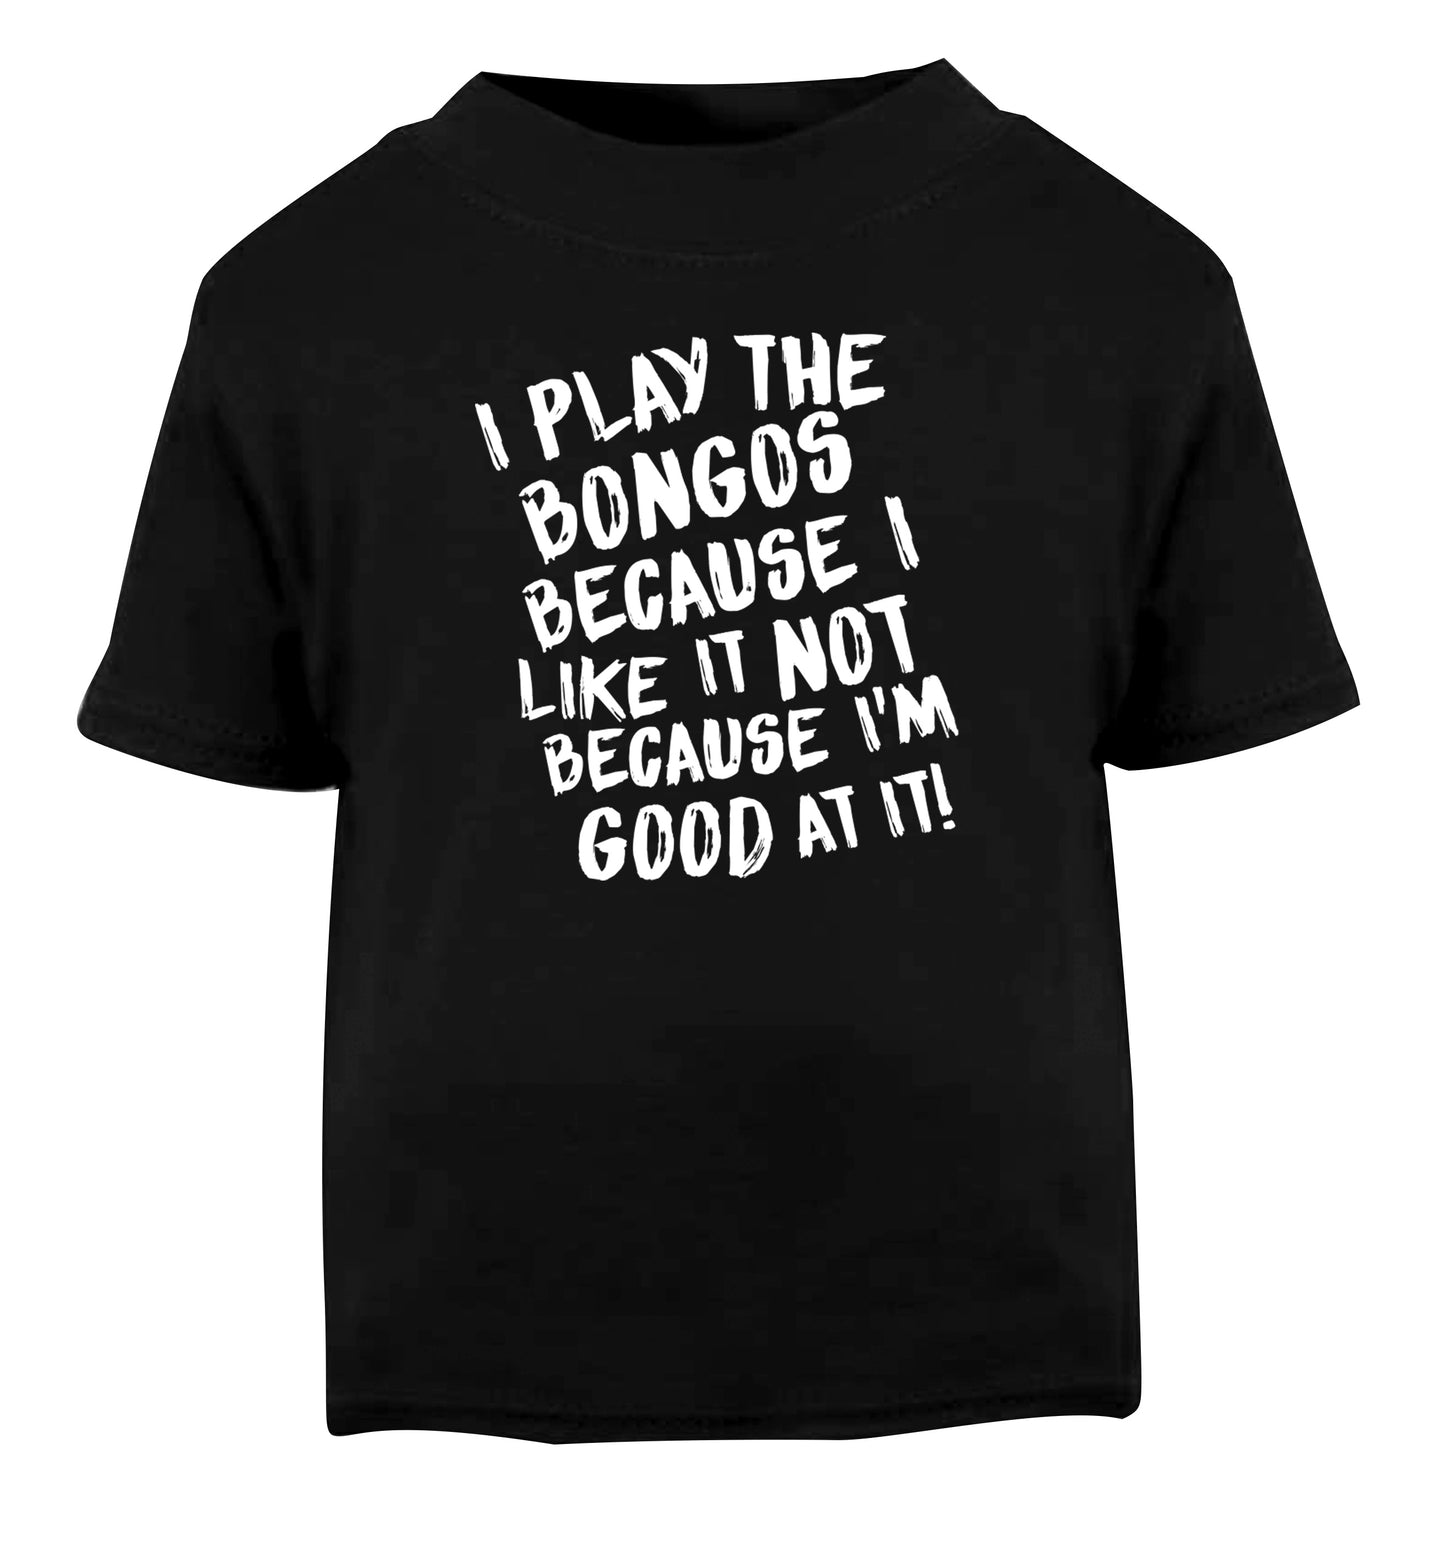 I play the bongos because I like it not because I'm good at it Black Baby Toddler Tshirt 2 years